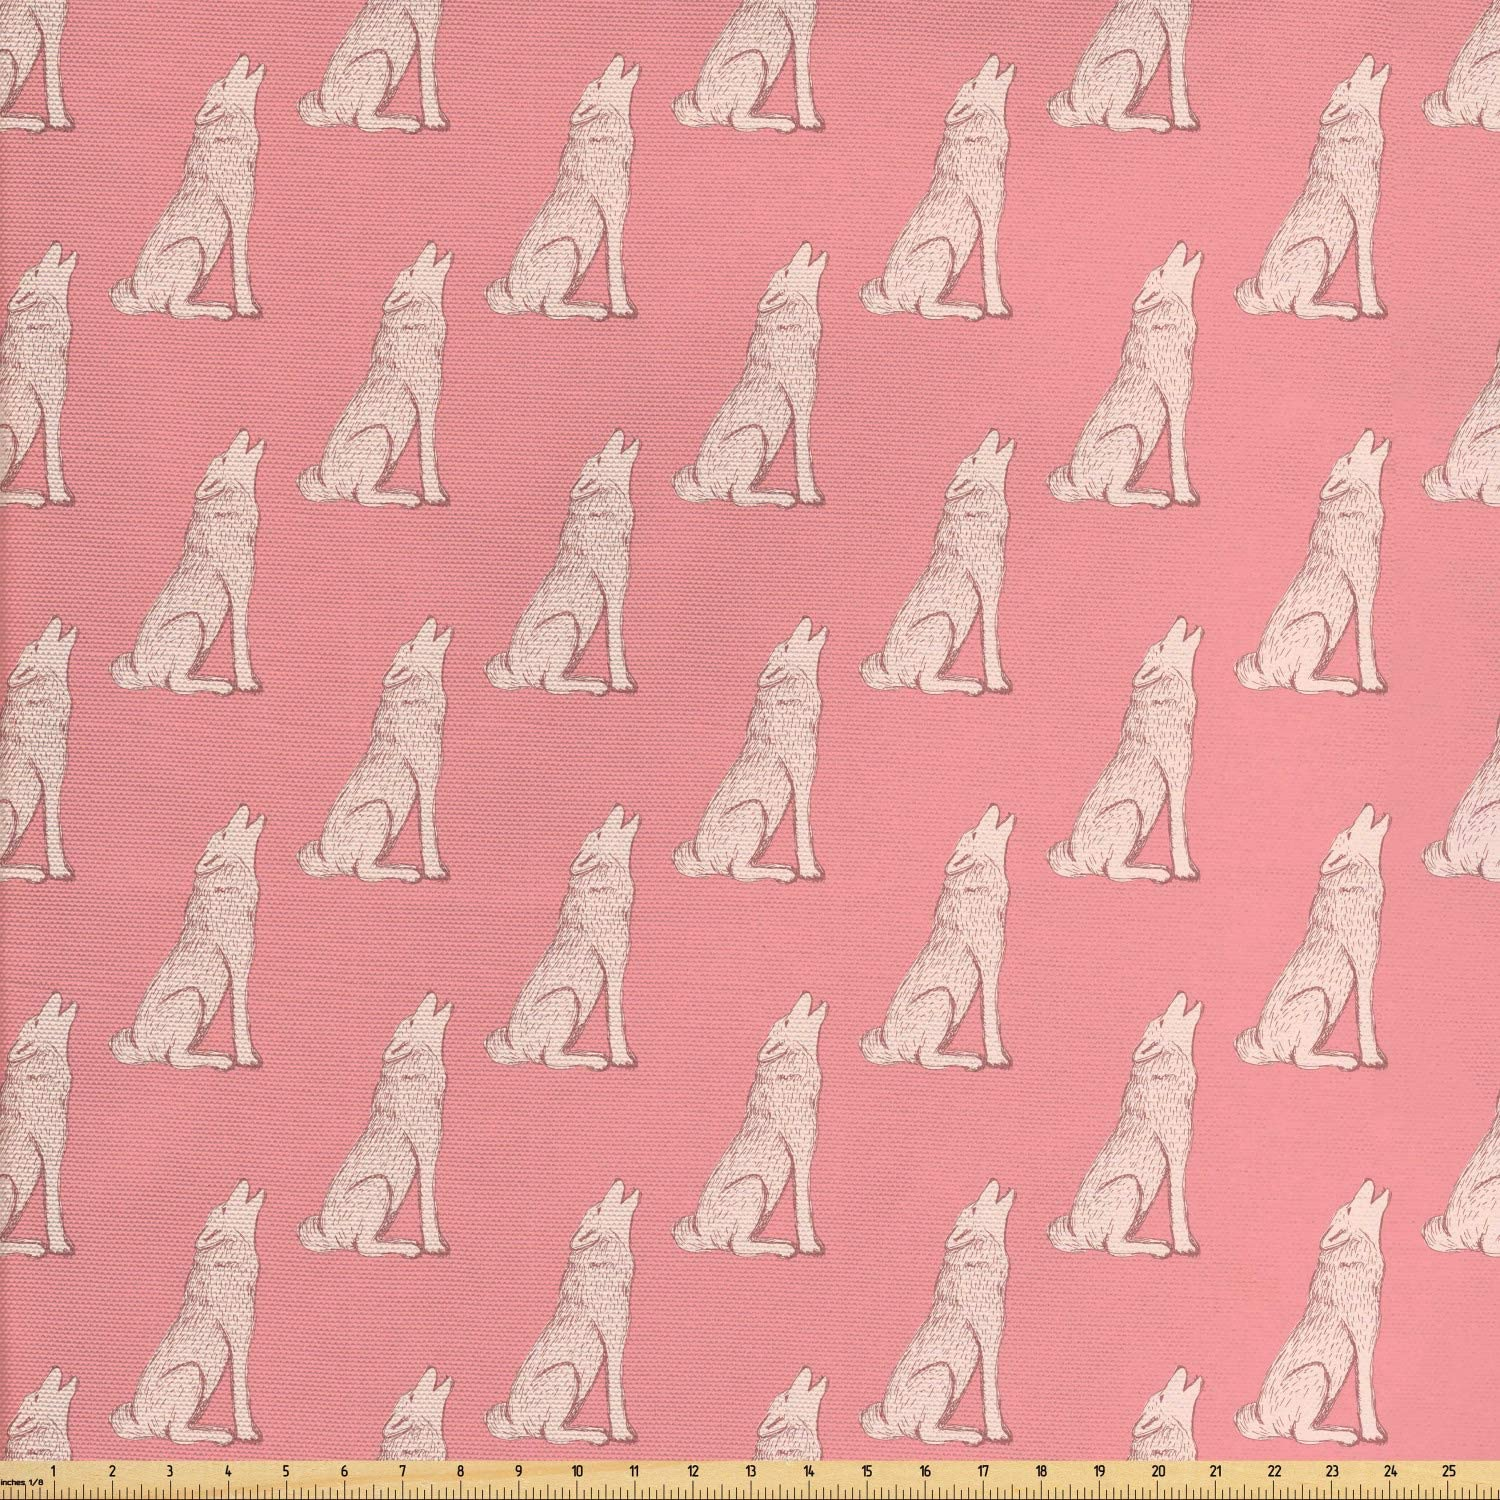 Ambesonne Animal Fabric by The Yard, Howling Wolf Sketch Style Vintage Look Design, Decorative Fabric for Upholstery and Home Accents, 1 Yard, Blush Eggshell